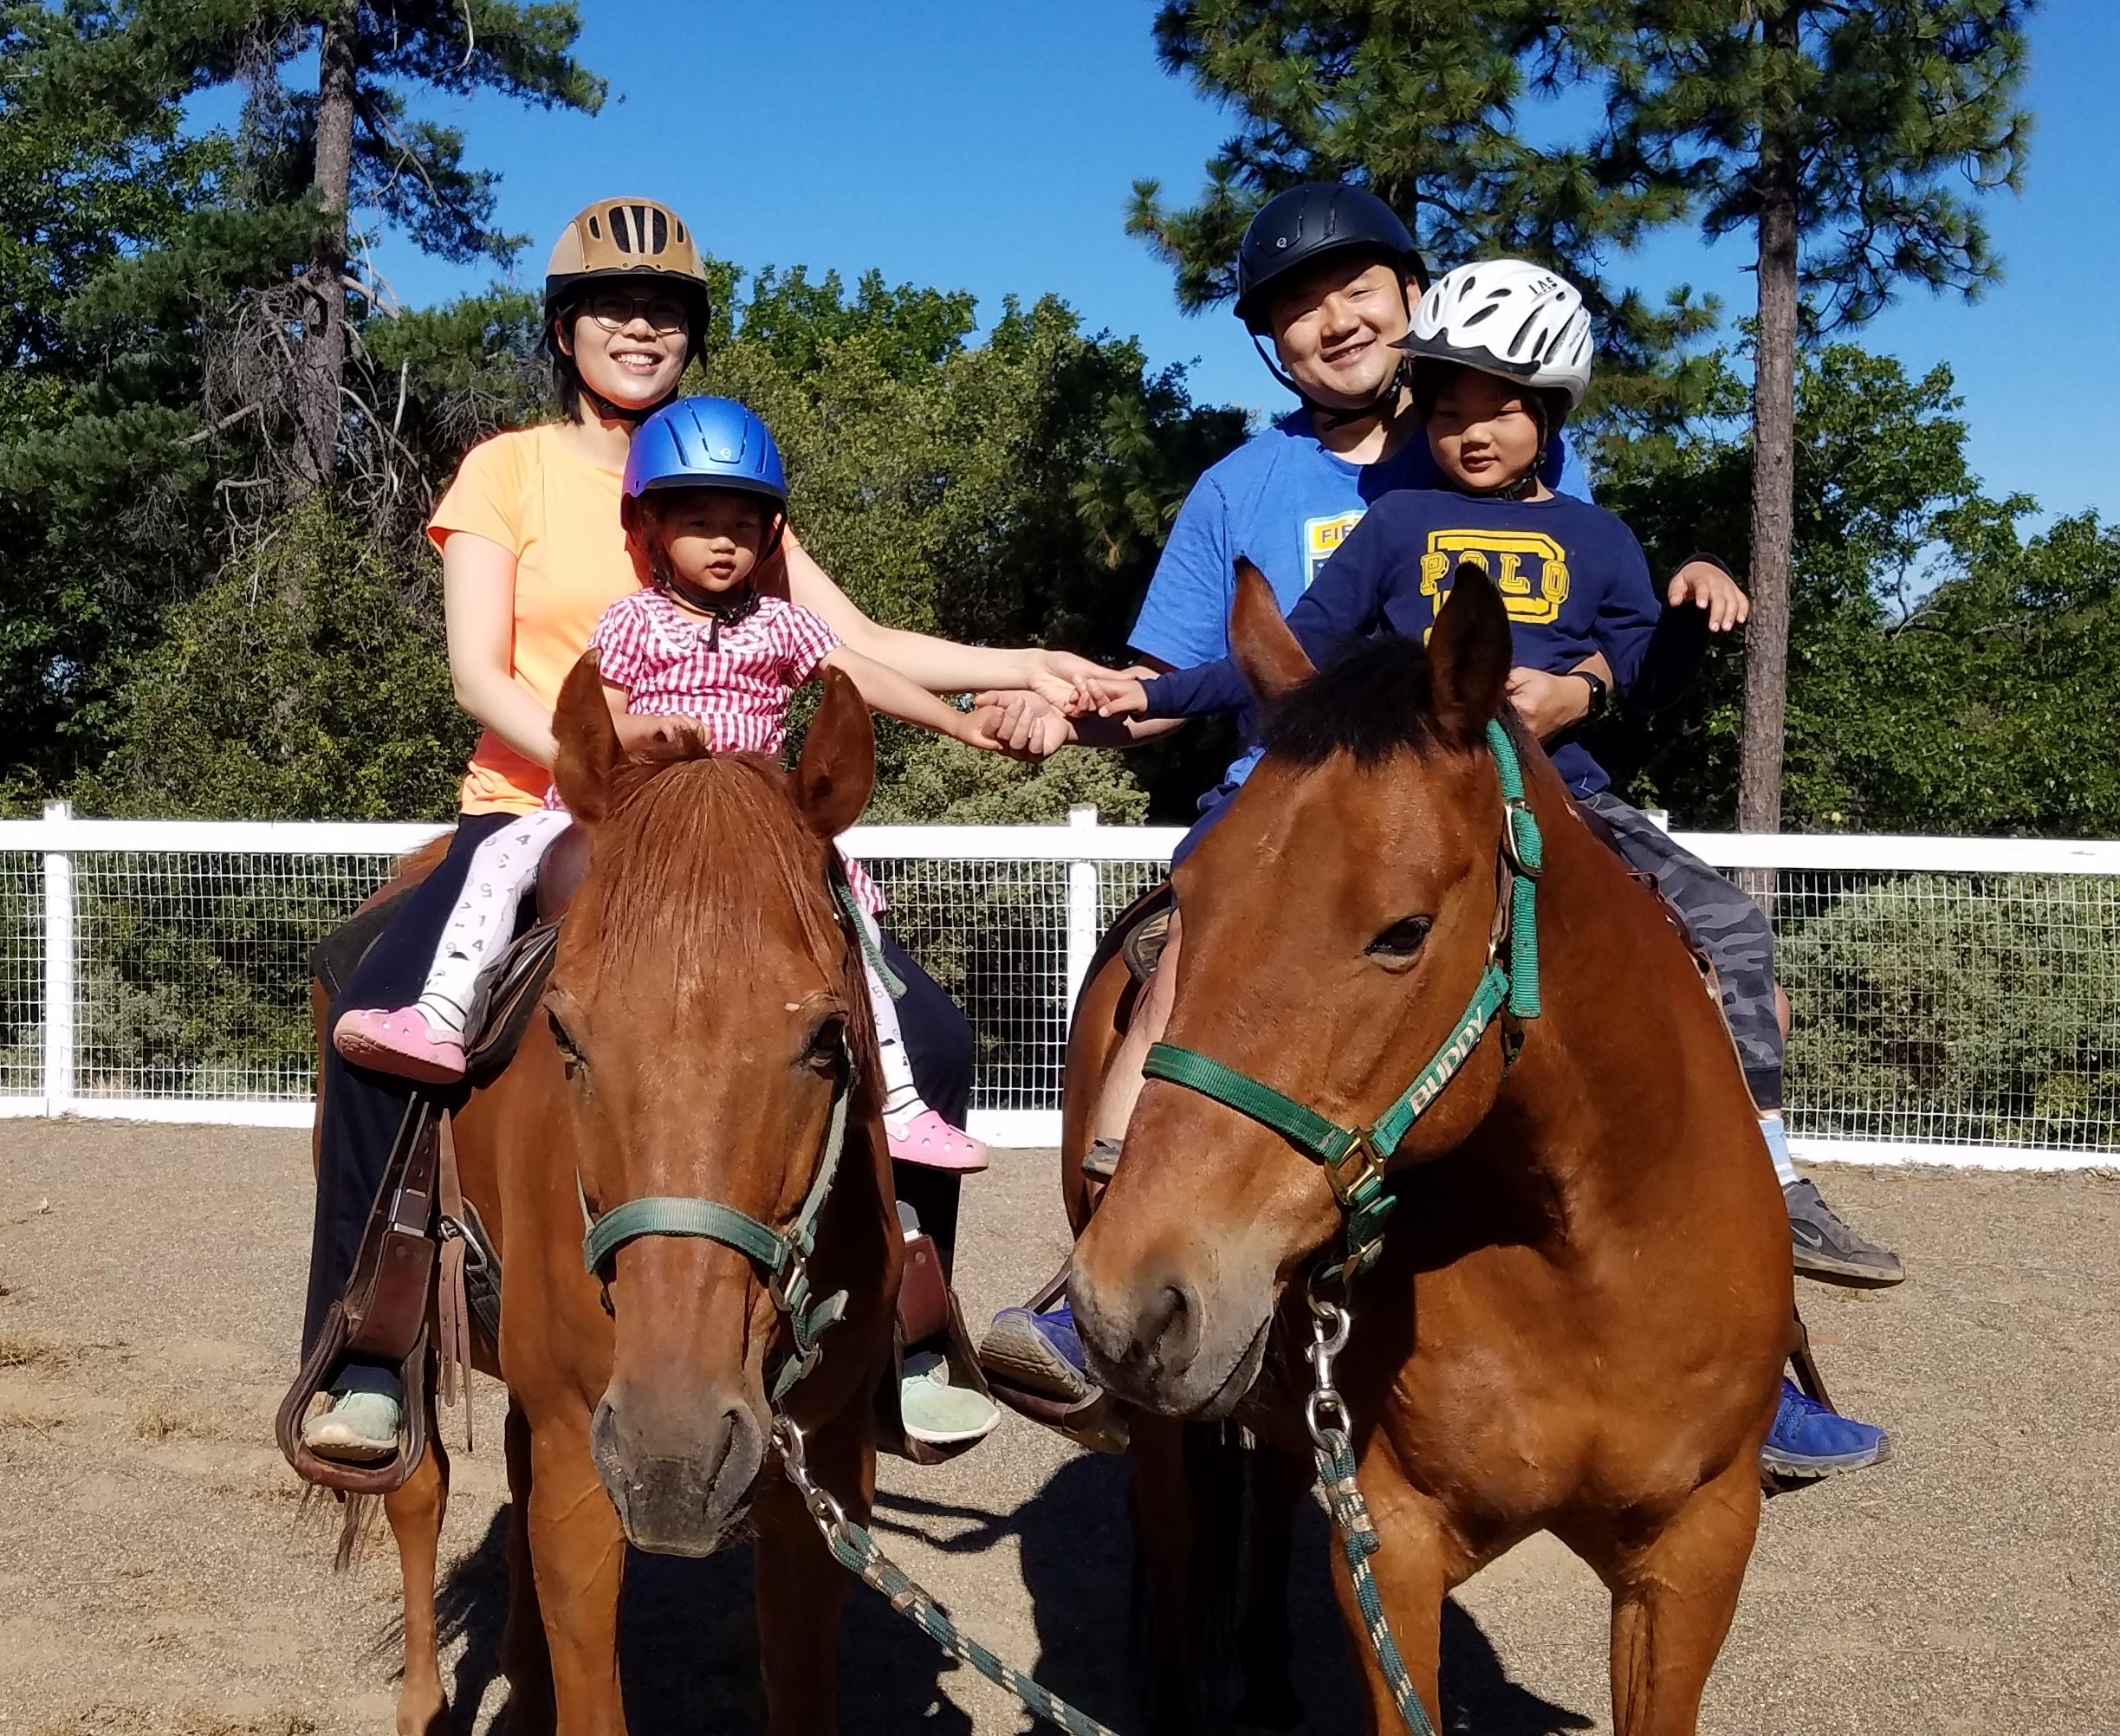 Enjoying the horses at the Dog & Pony Ranch